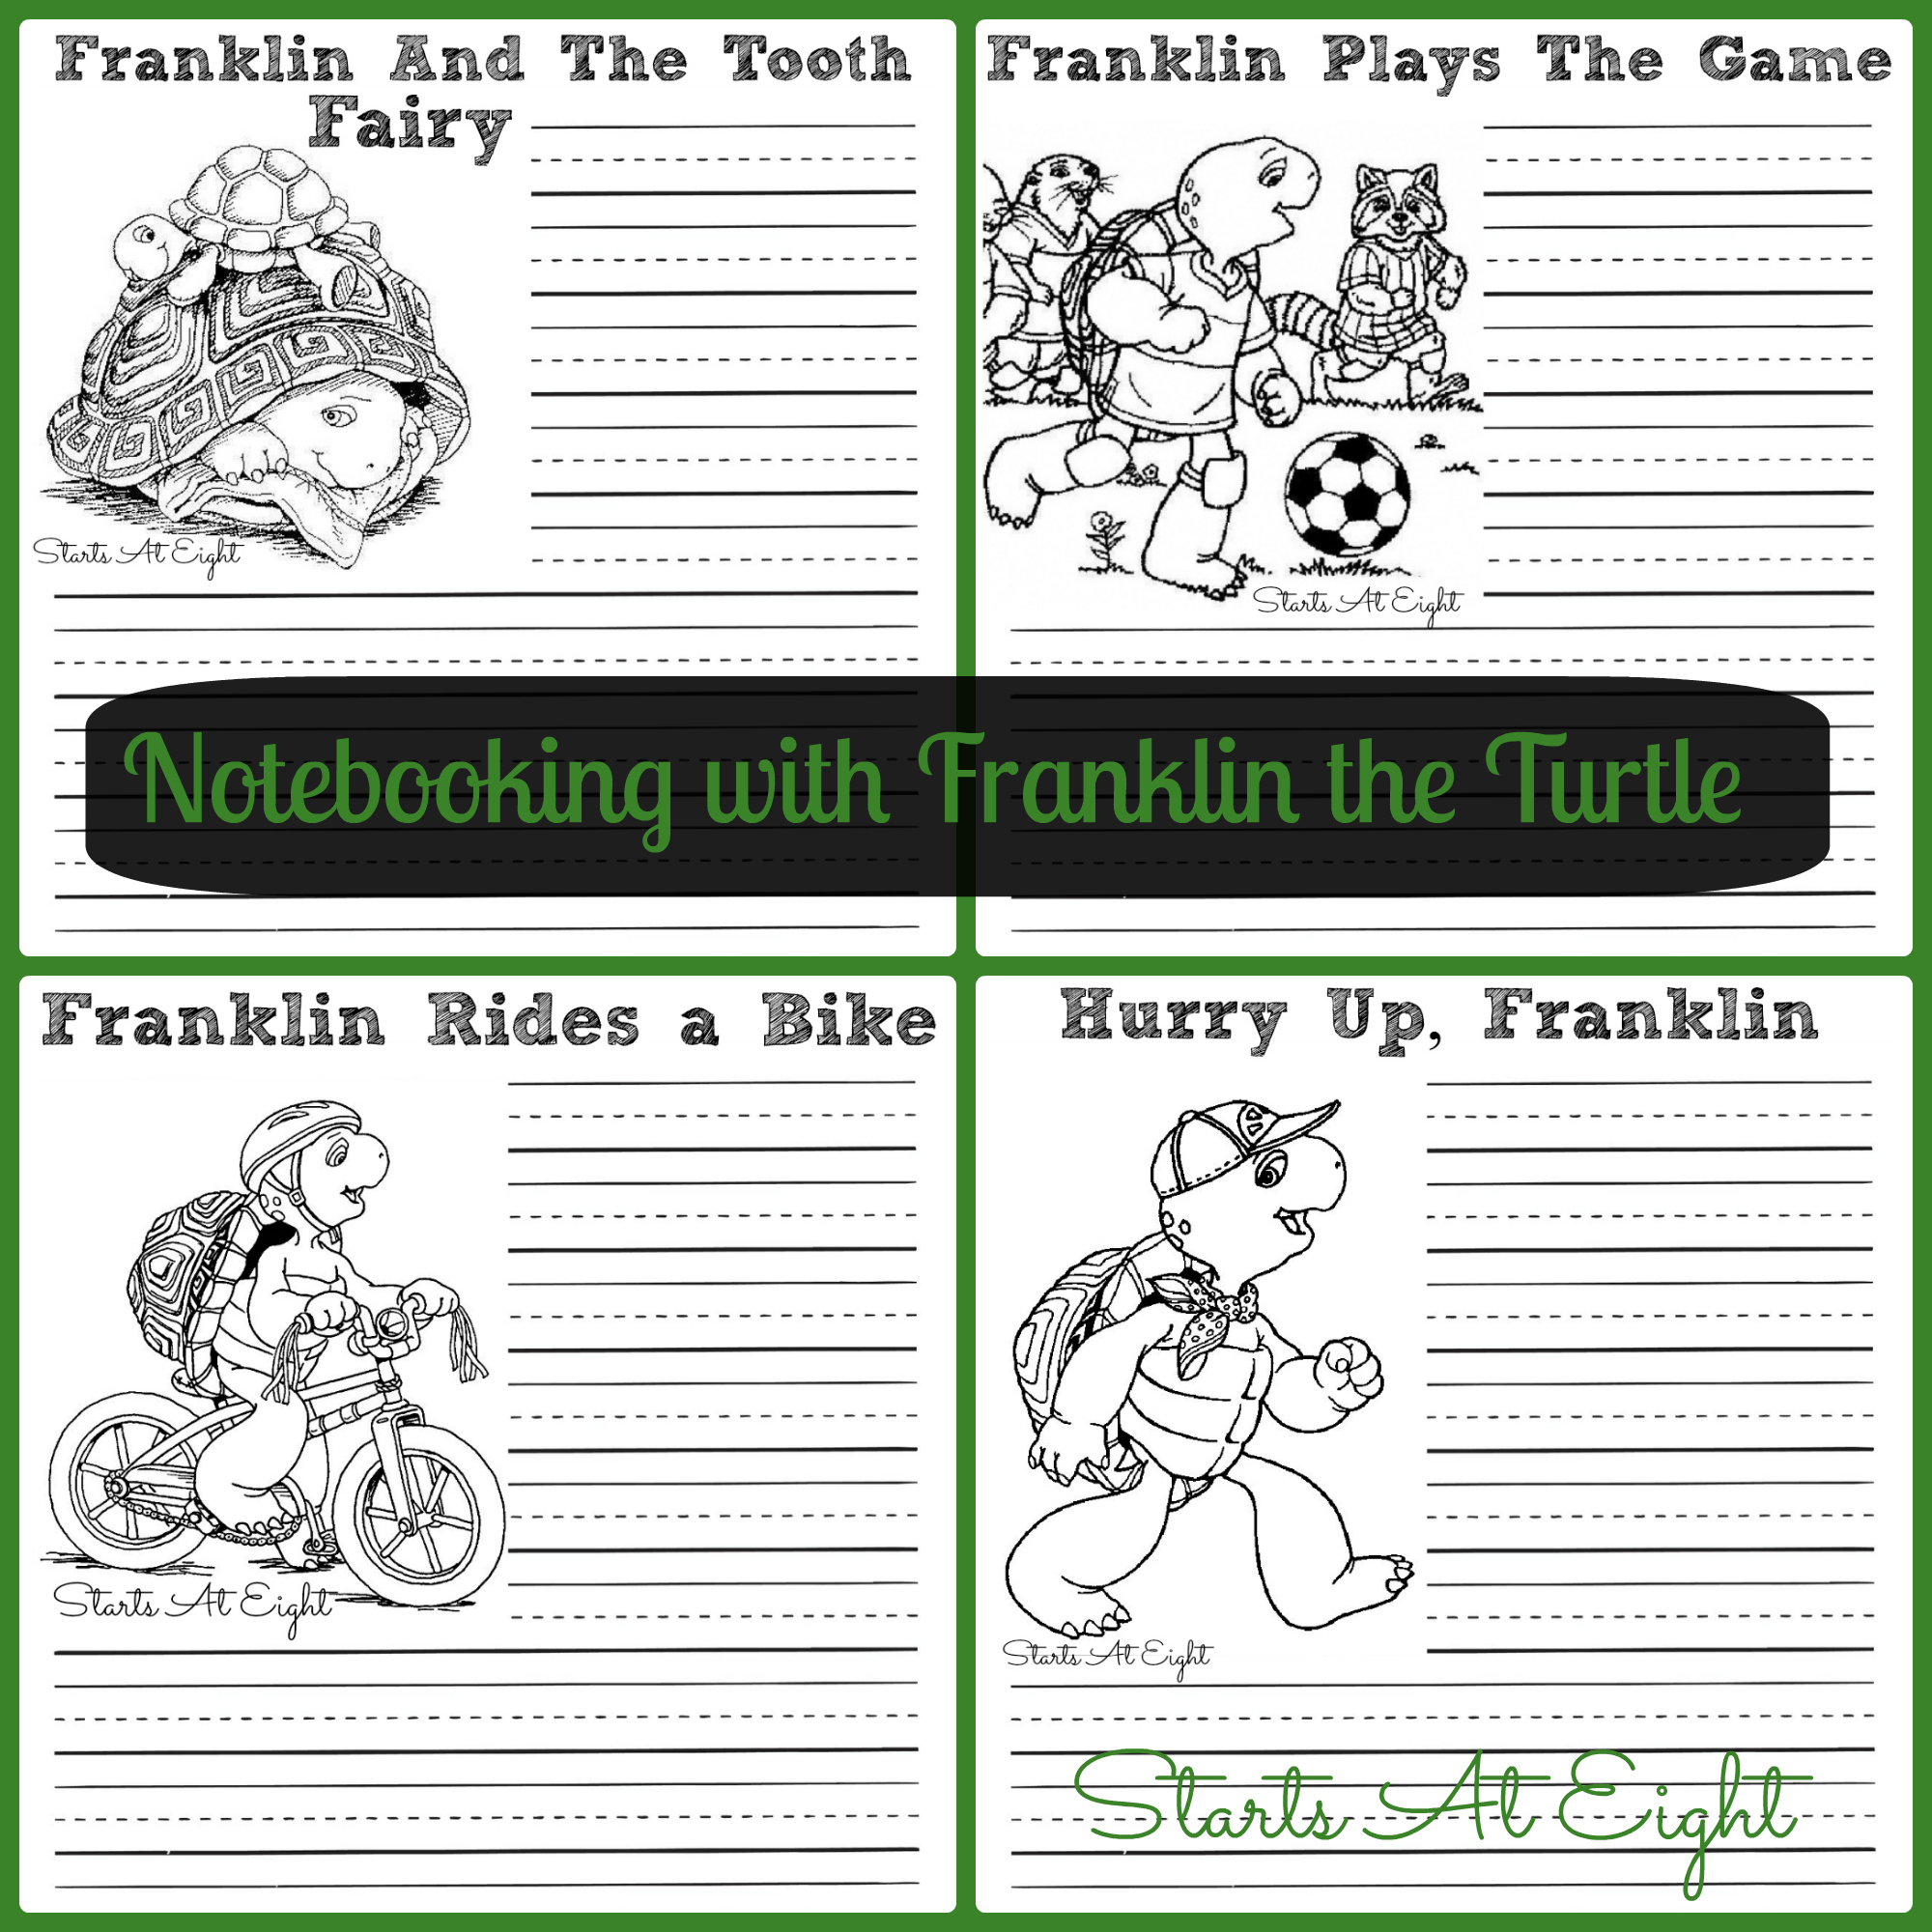 Notebooking With Franklin The Turtle